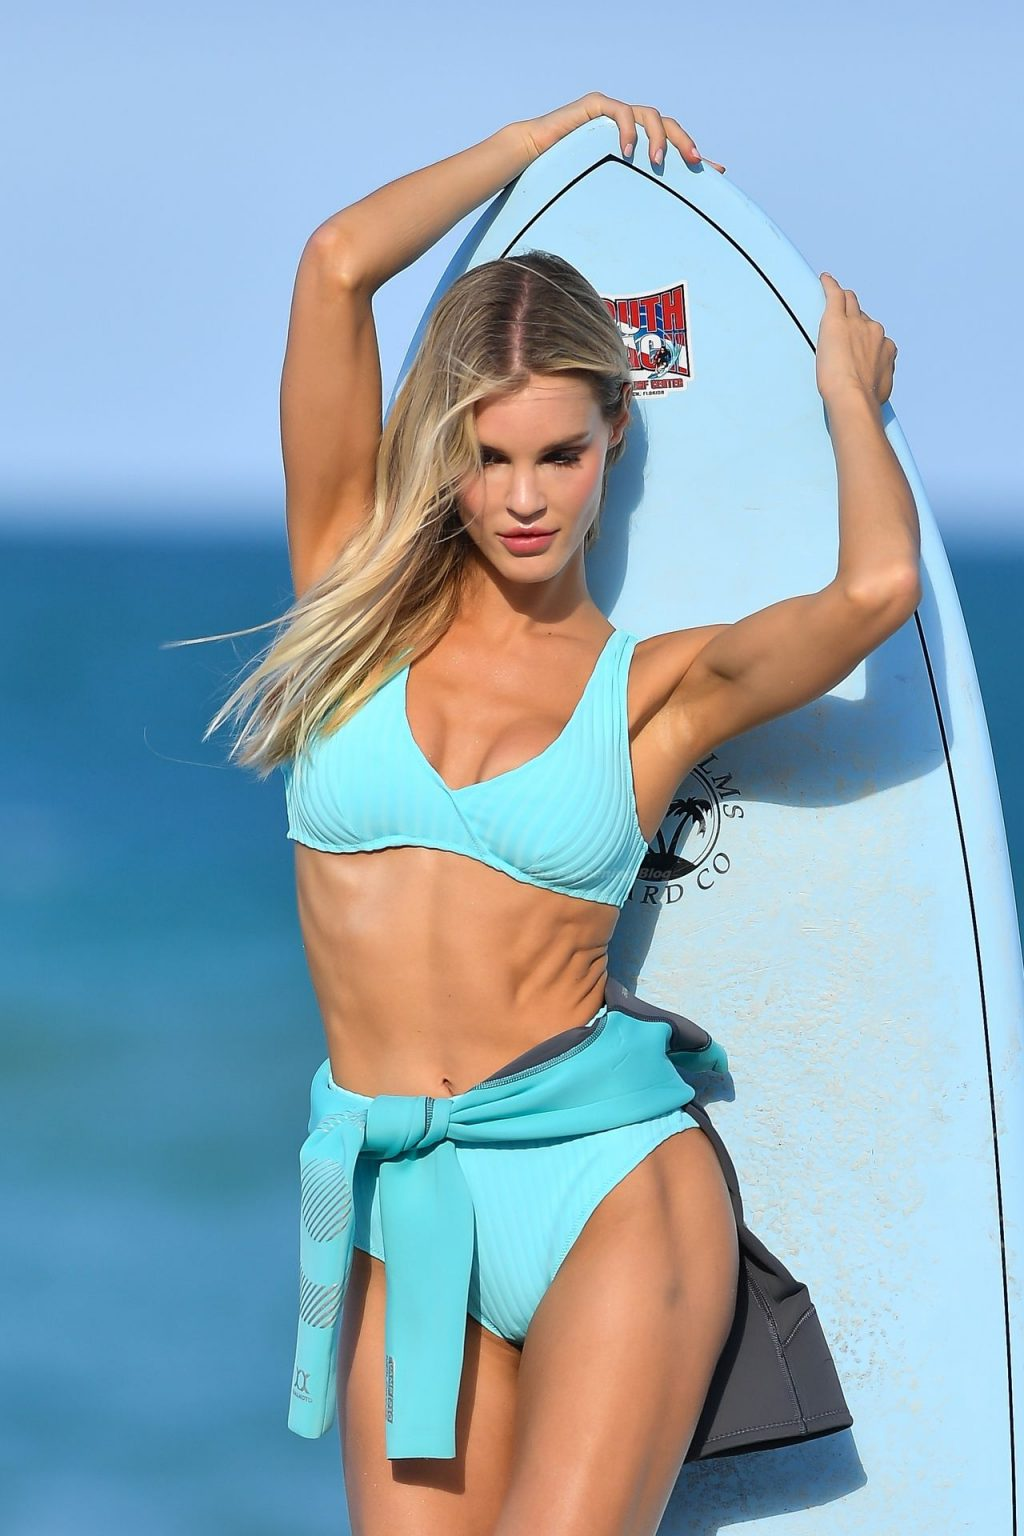 Joy Corrigan Holds a Surfboard Doing a Bikini Shoot (36 Photos)